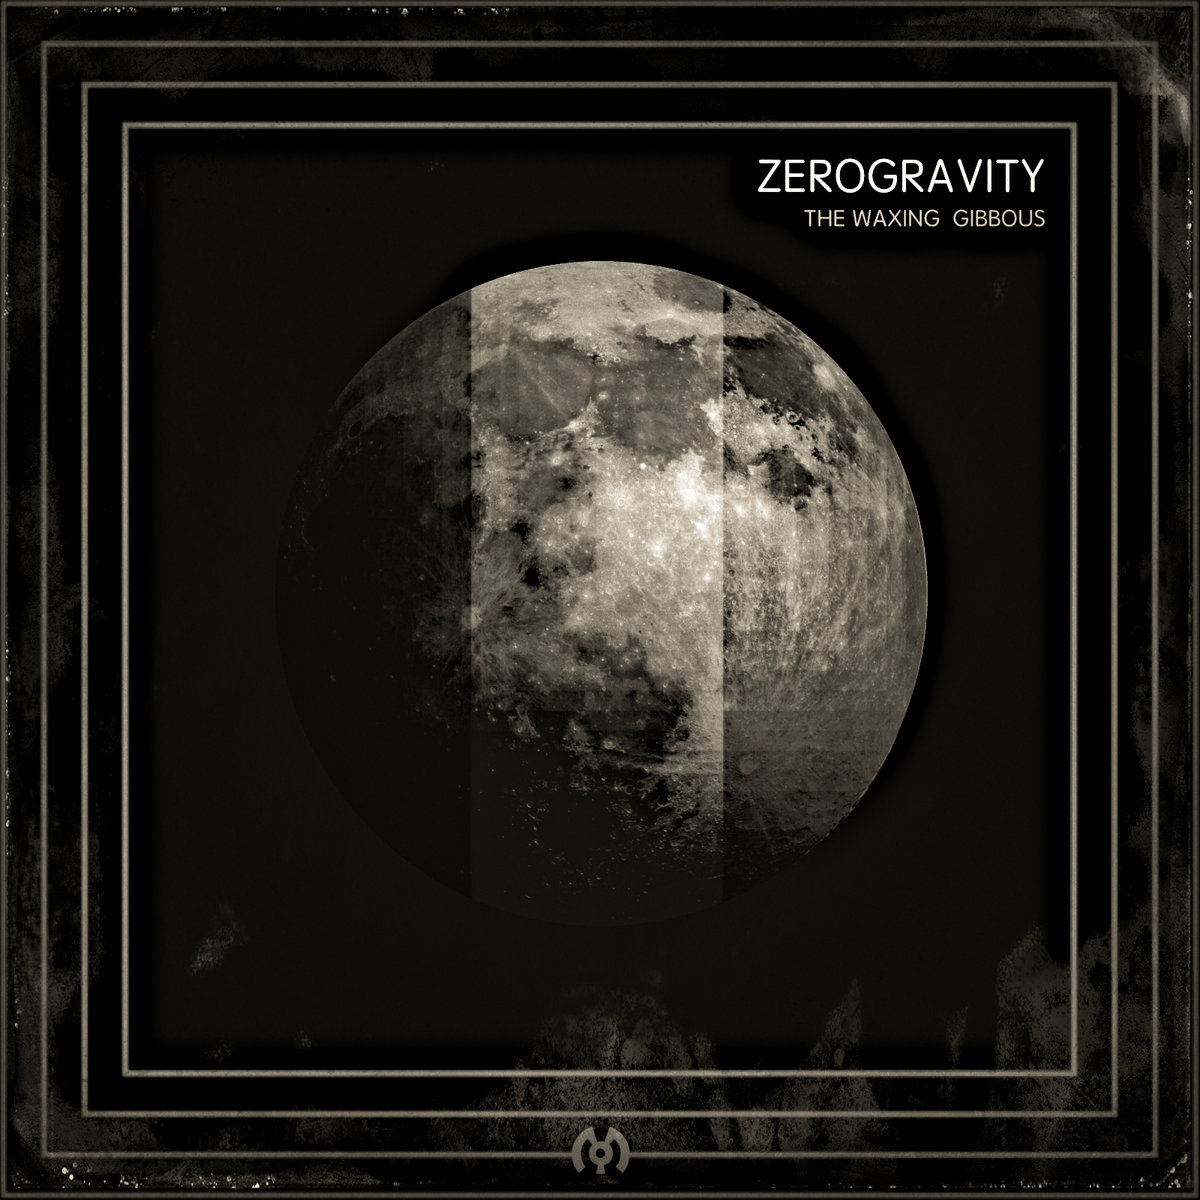 ZEROGRAVITY - Late Night Delight @ 'The Waxing Gibbous' album (electronic, dubstep)